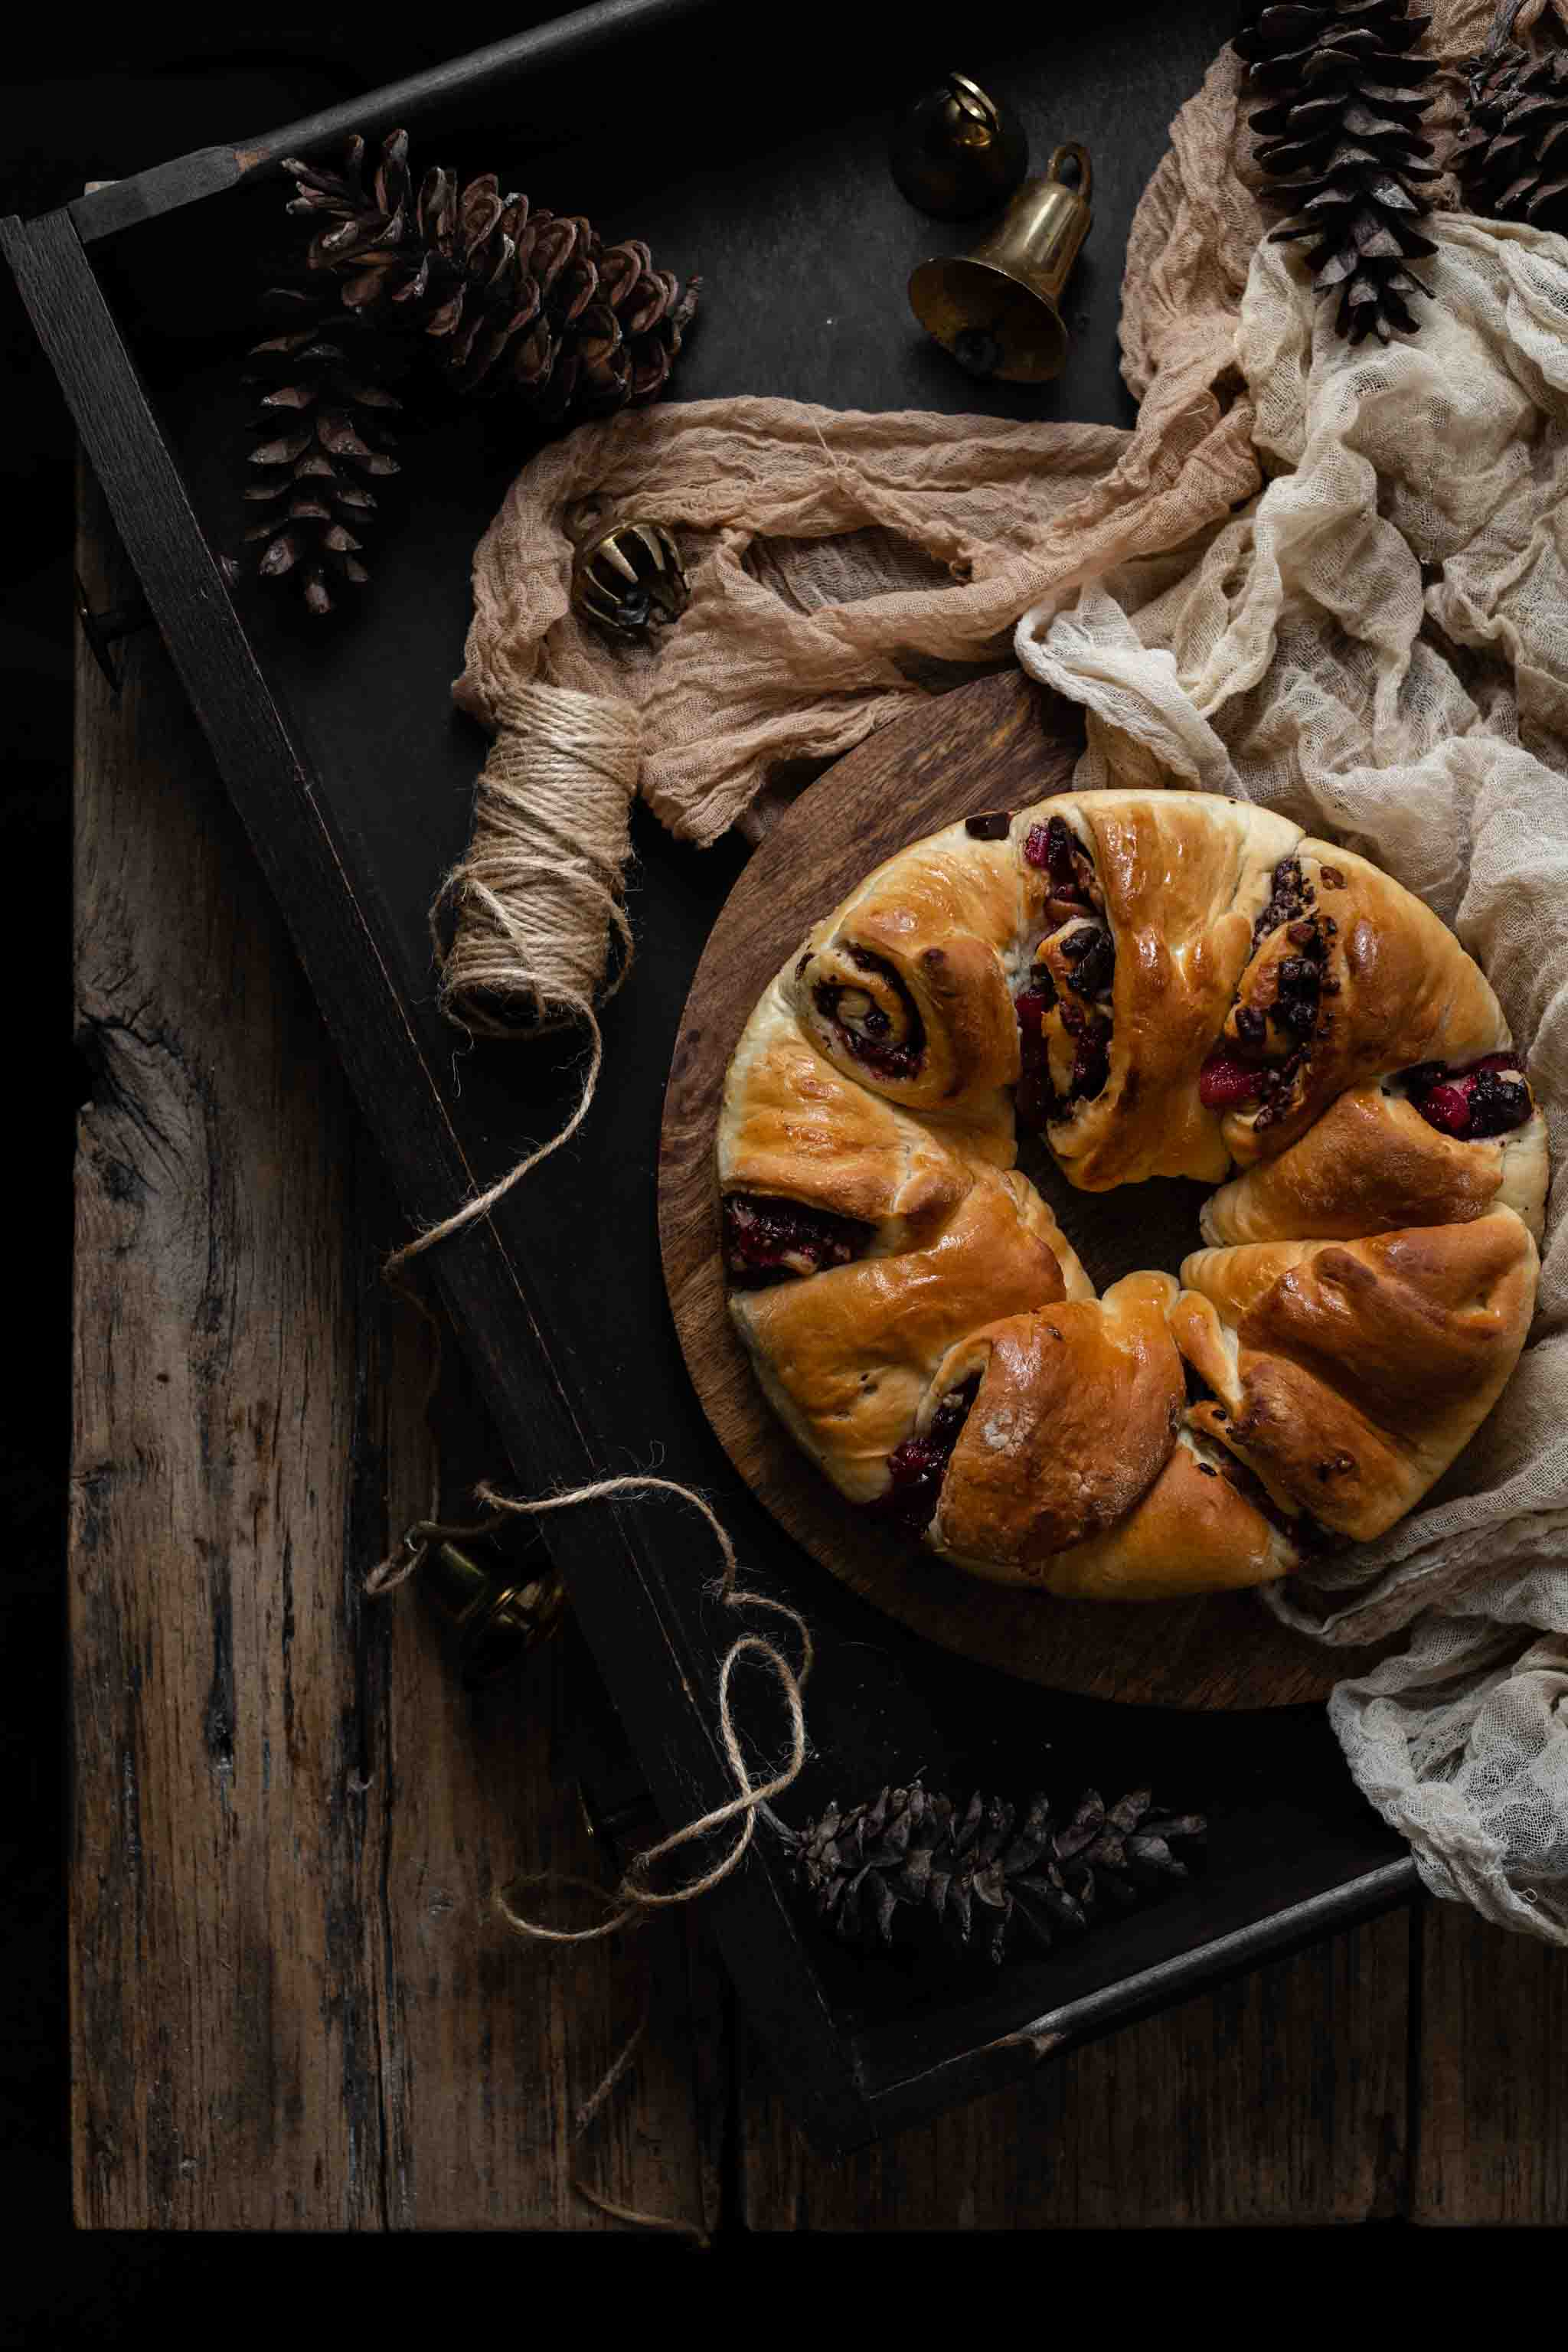 Recipe for bread wreath with blackberry compote and chocolate.